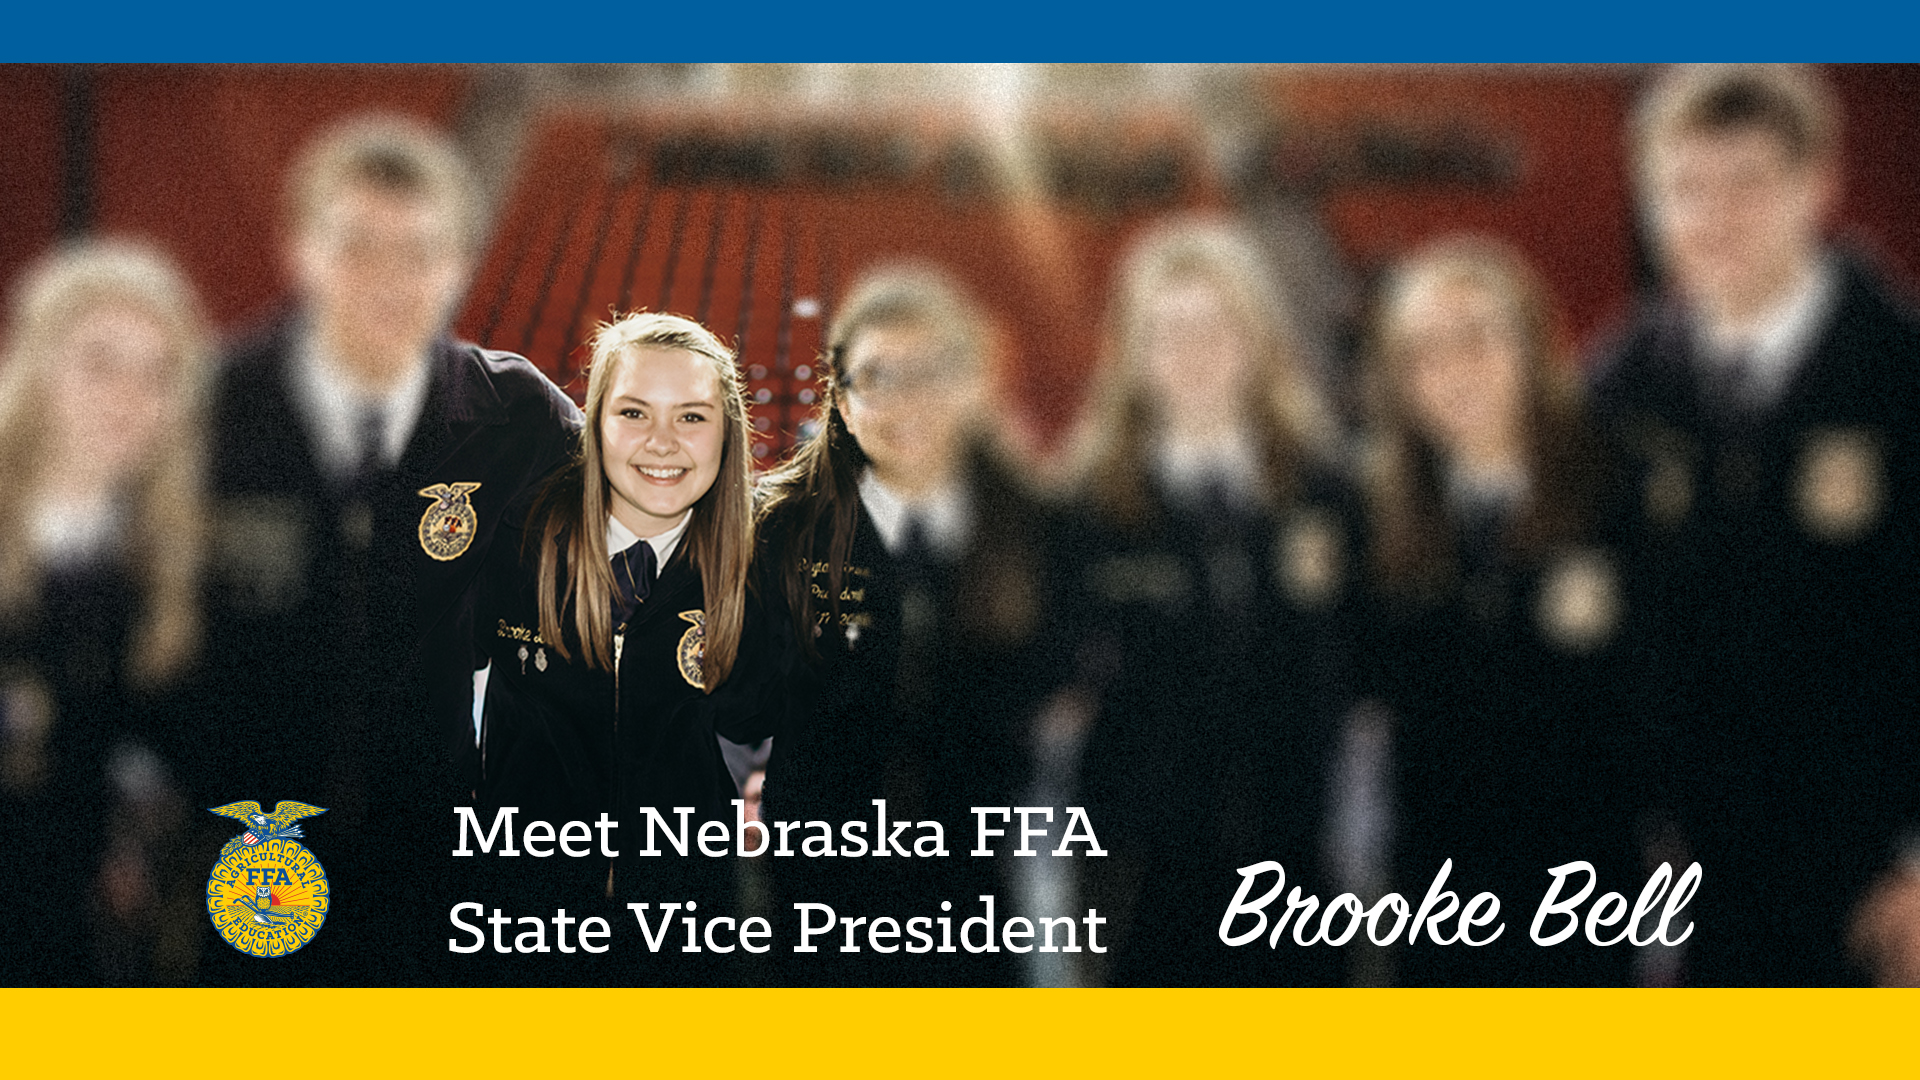 Meet Your 2018-19 Nebraska FFA State Vice President: Brooke Bell